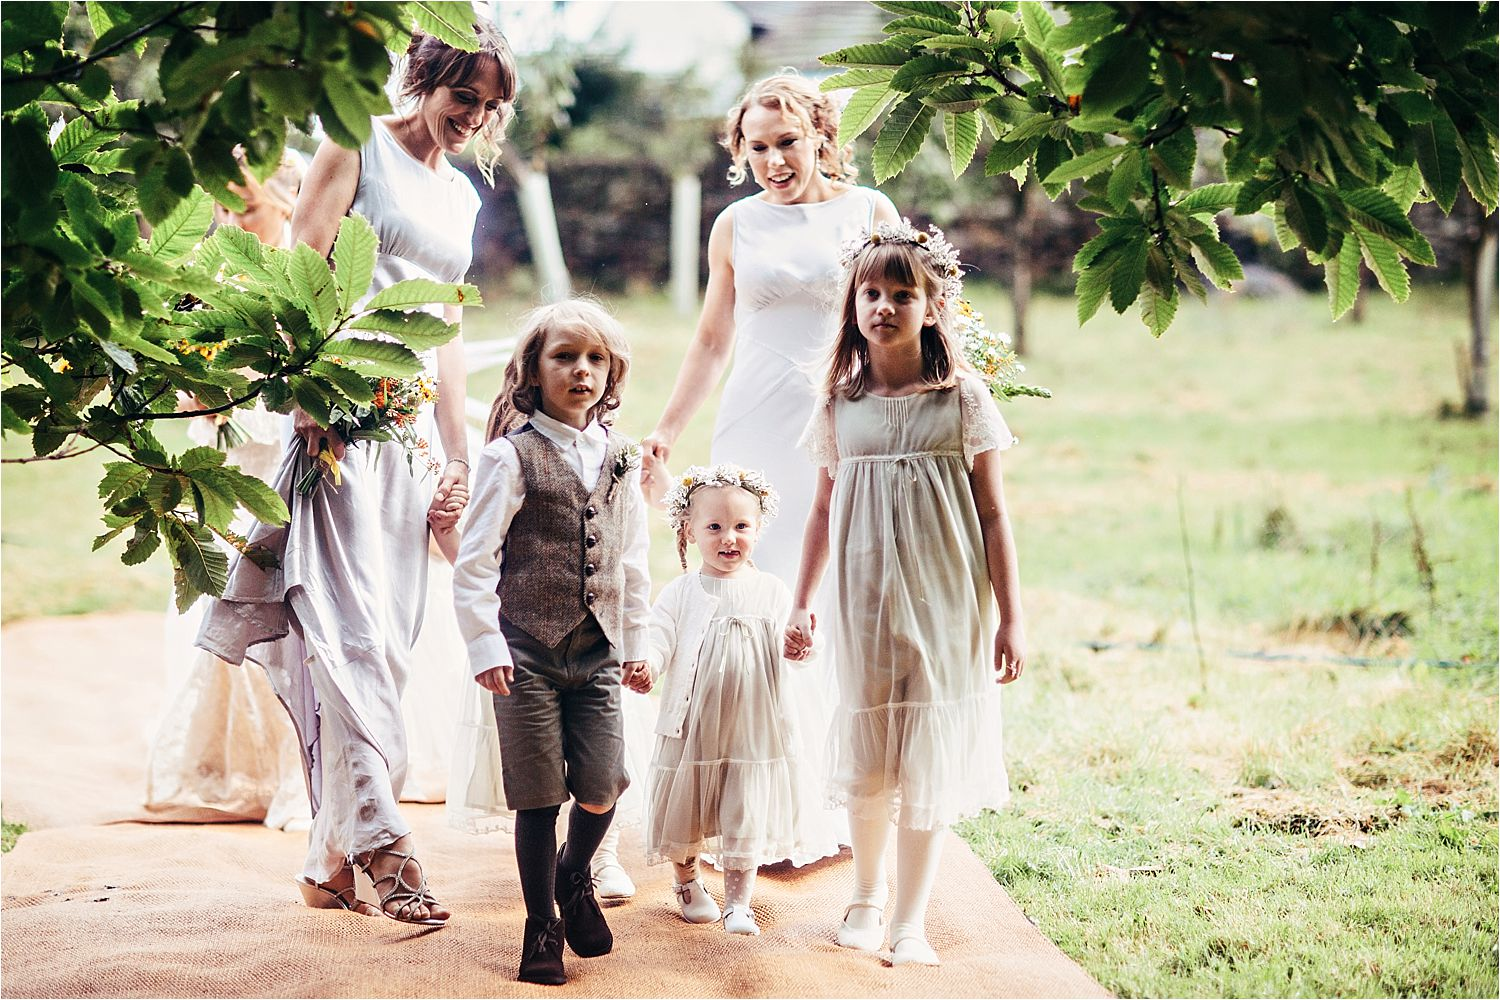 Bridesmaids and page boys arriving at Manchester tipi wedding